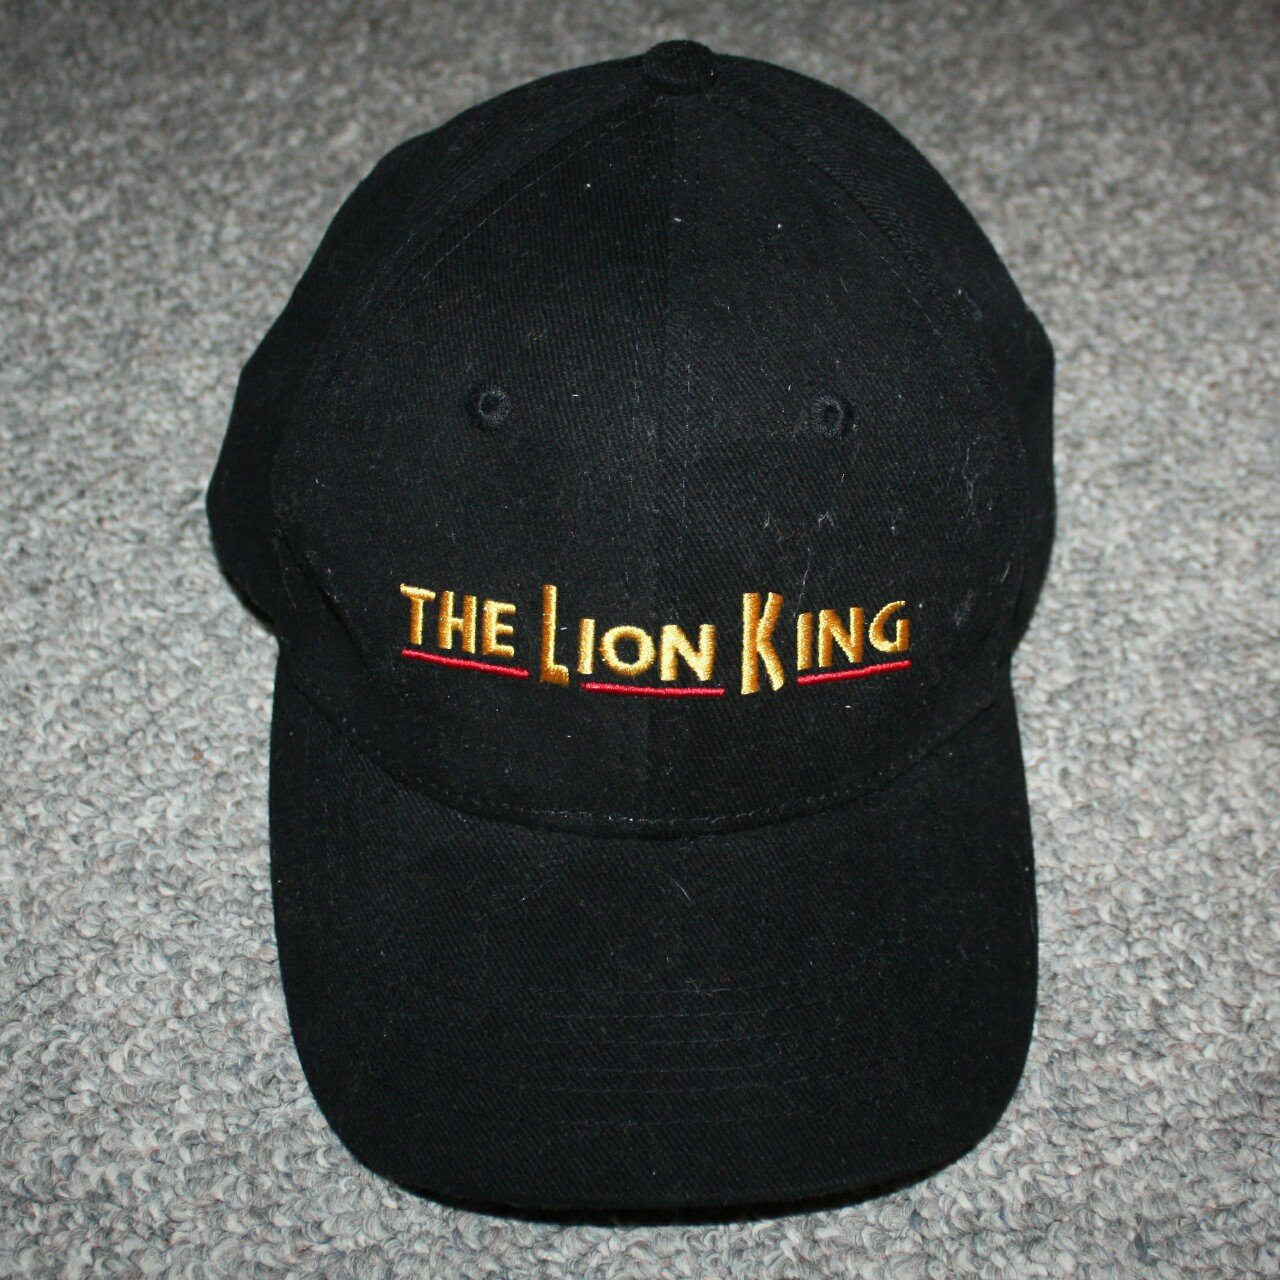 8719129183f Vtg THE LION KING snap back hat! One size fits all. Great - Depop